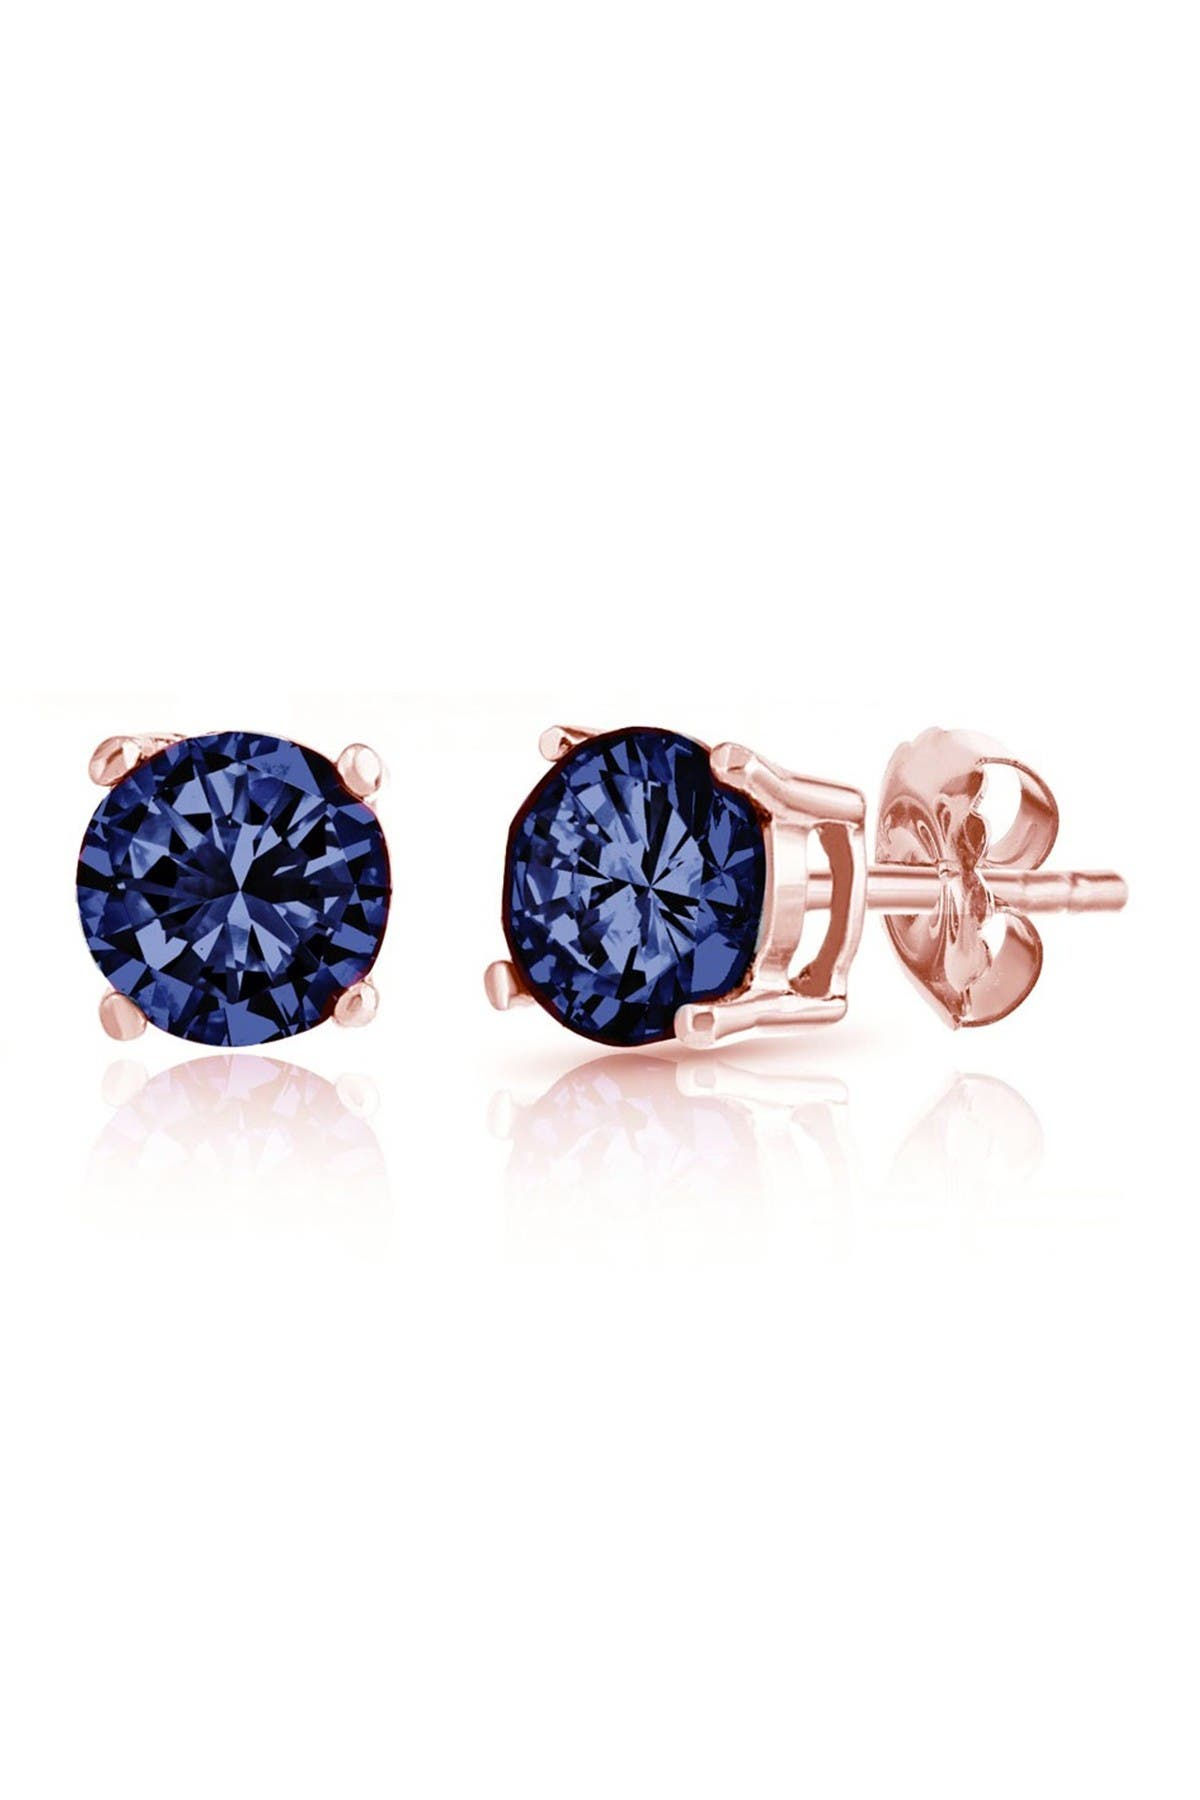 Image of Best Silver Inc. 14K Rose Gold-Plated 6mm London Blue CZ Stud Earrings